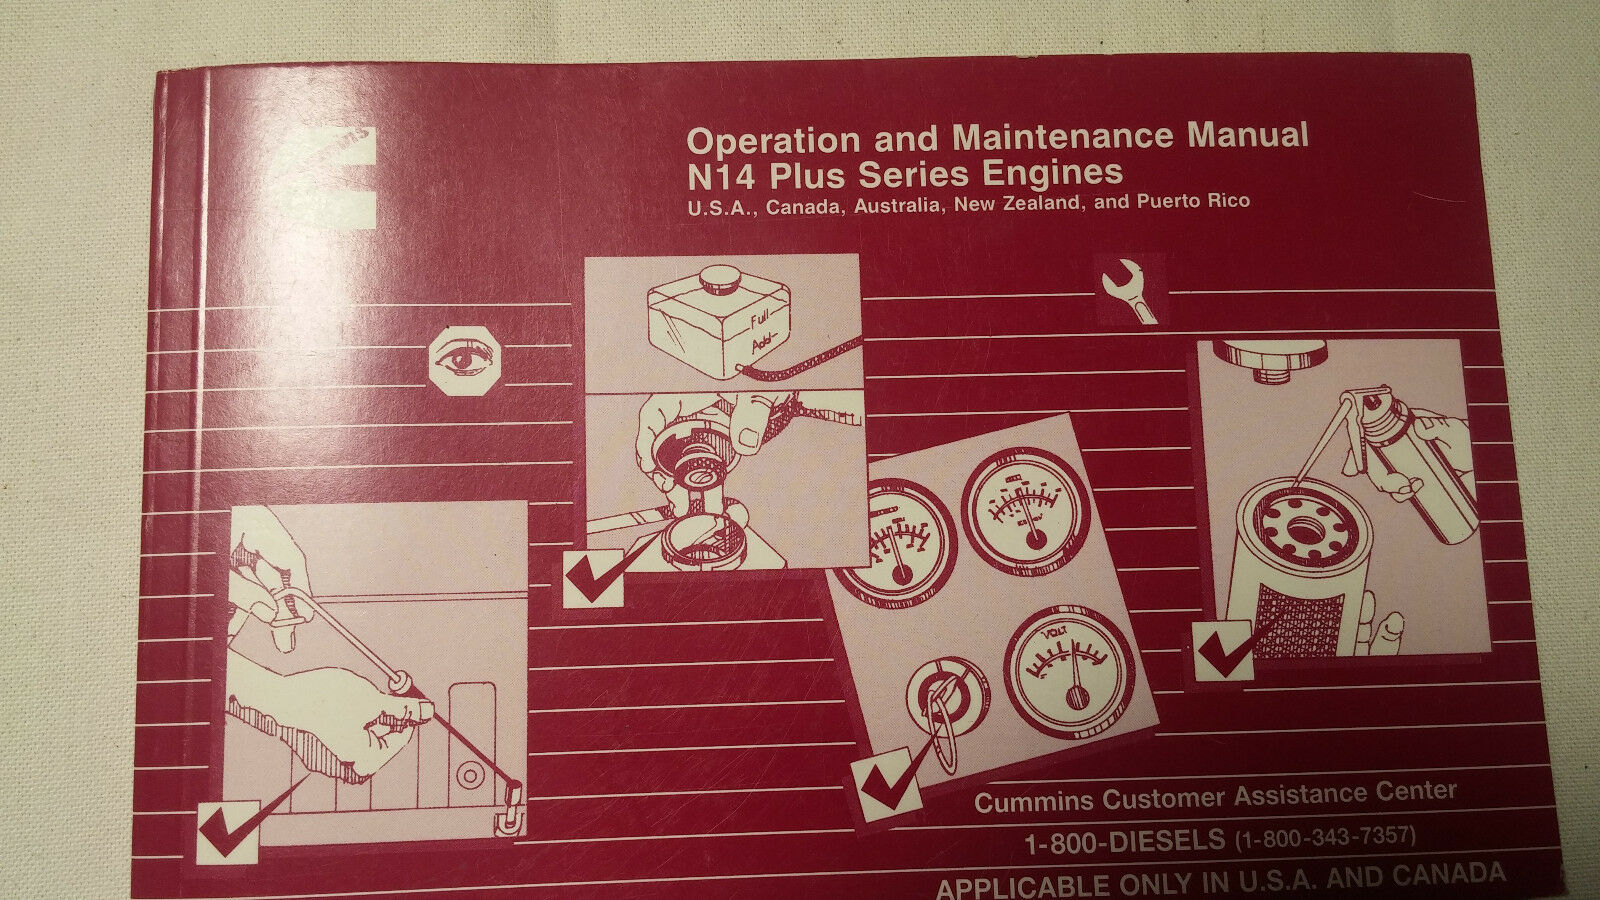 Operation And Maintenance Manual for Cummins N14 Series Engines Printed  1/99 1 of 2Only 1 available ...